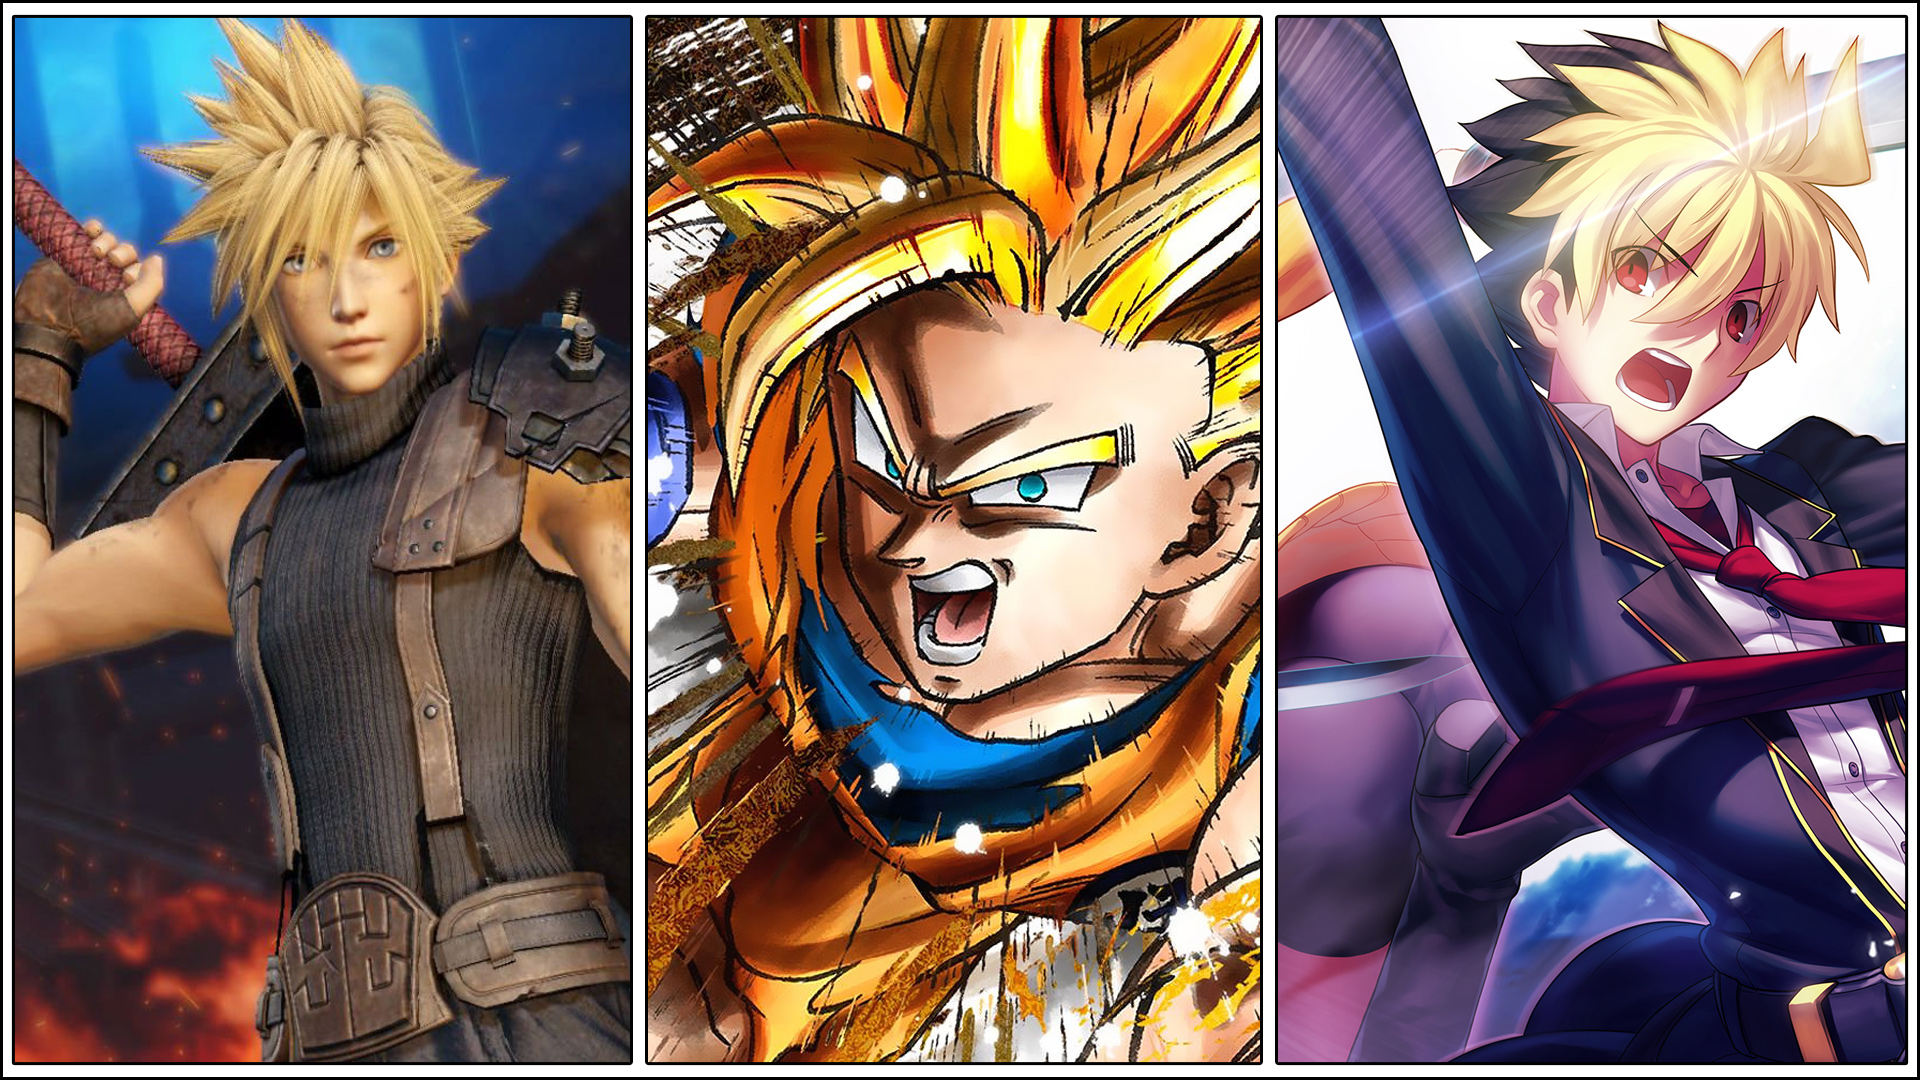 Go For Broke: Dragon Ball FighterZ and Dissidia Final Fantasy NT Lead 2018's Fighting Charge